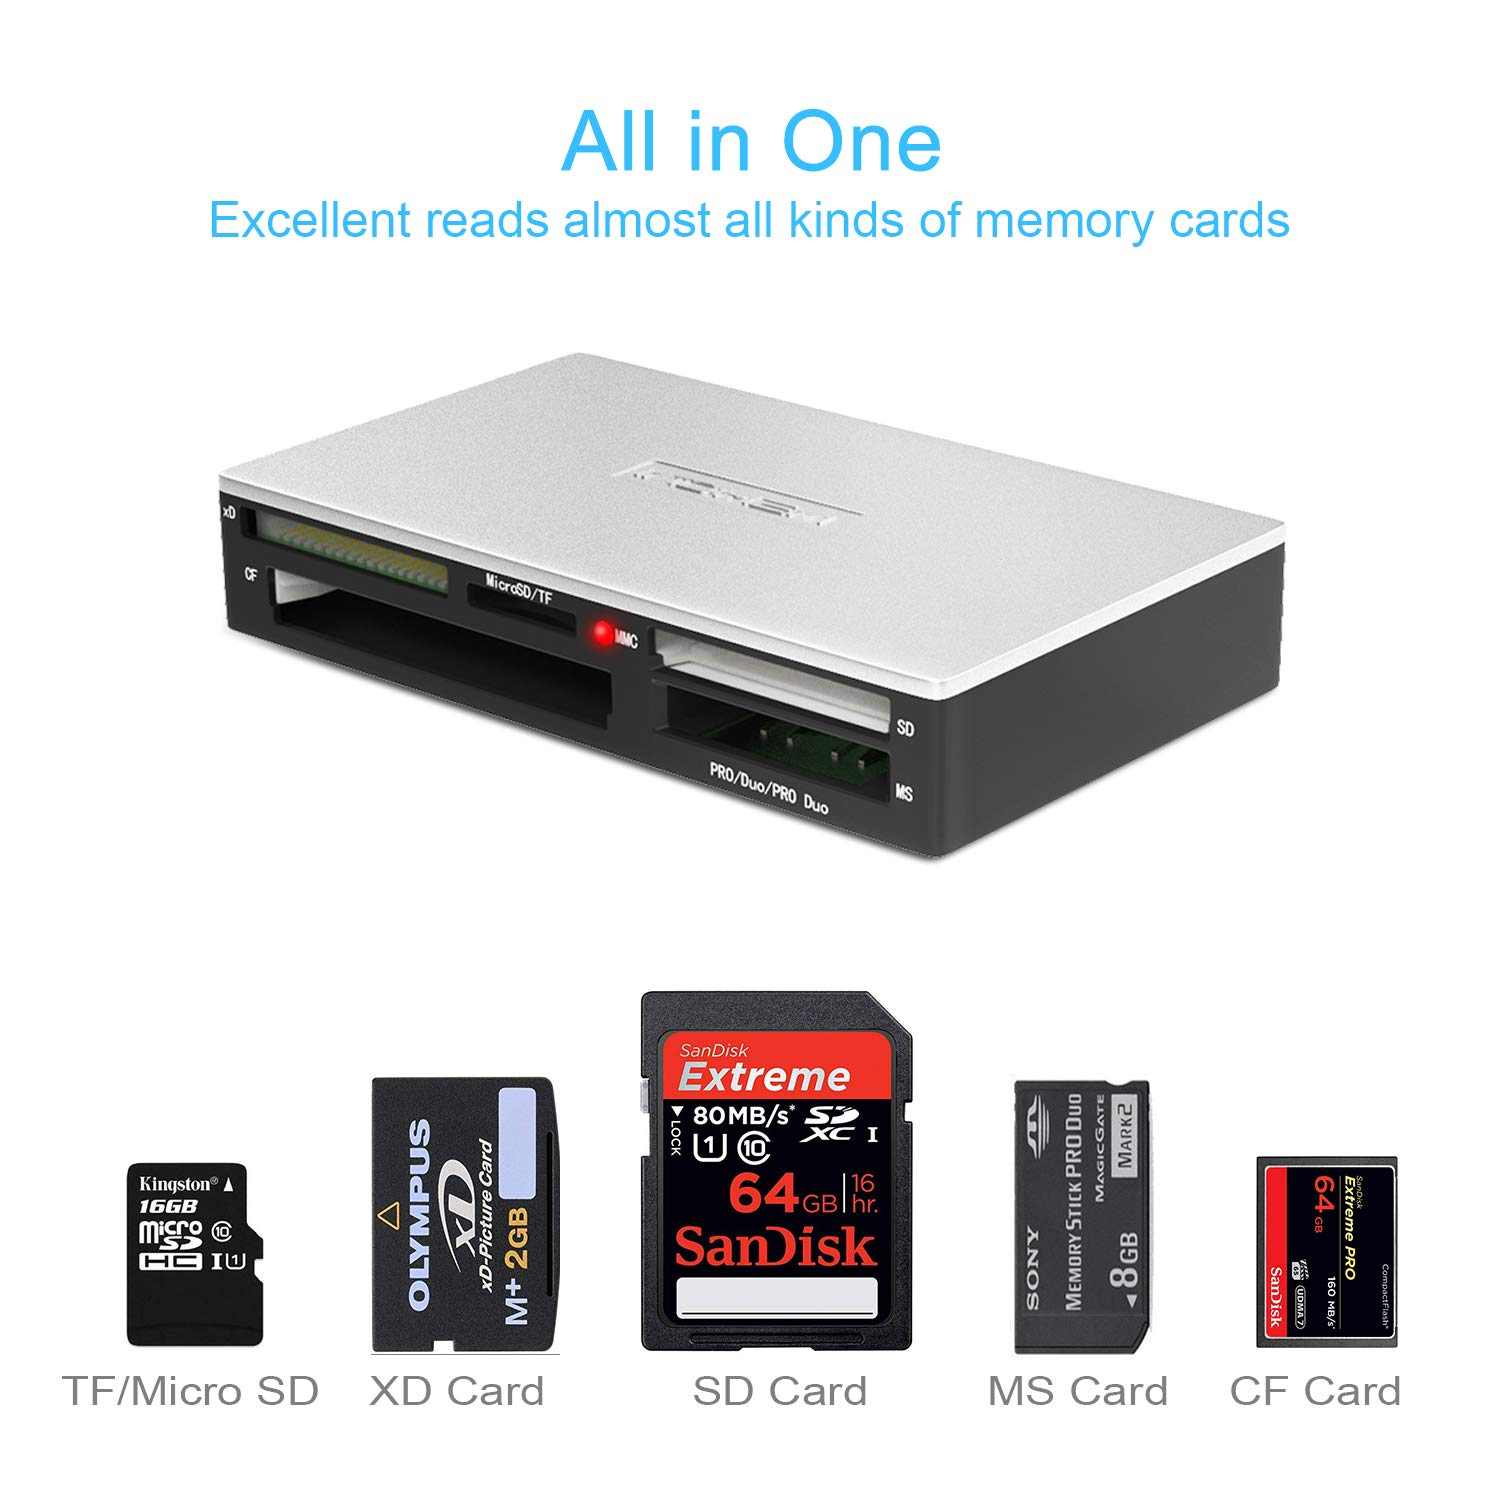 INDMEM Portable SD Card Reader Writer USB 3.0 All-in-1 Read 5 Flash Memory Cards Simultaneously Universal Adapter Multi Hub For CF, Micro SDXC, Micro ...